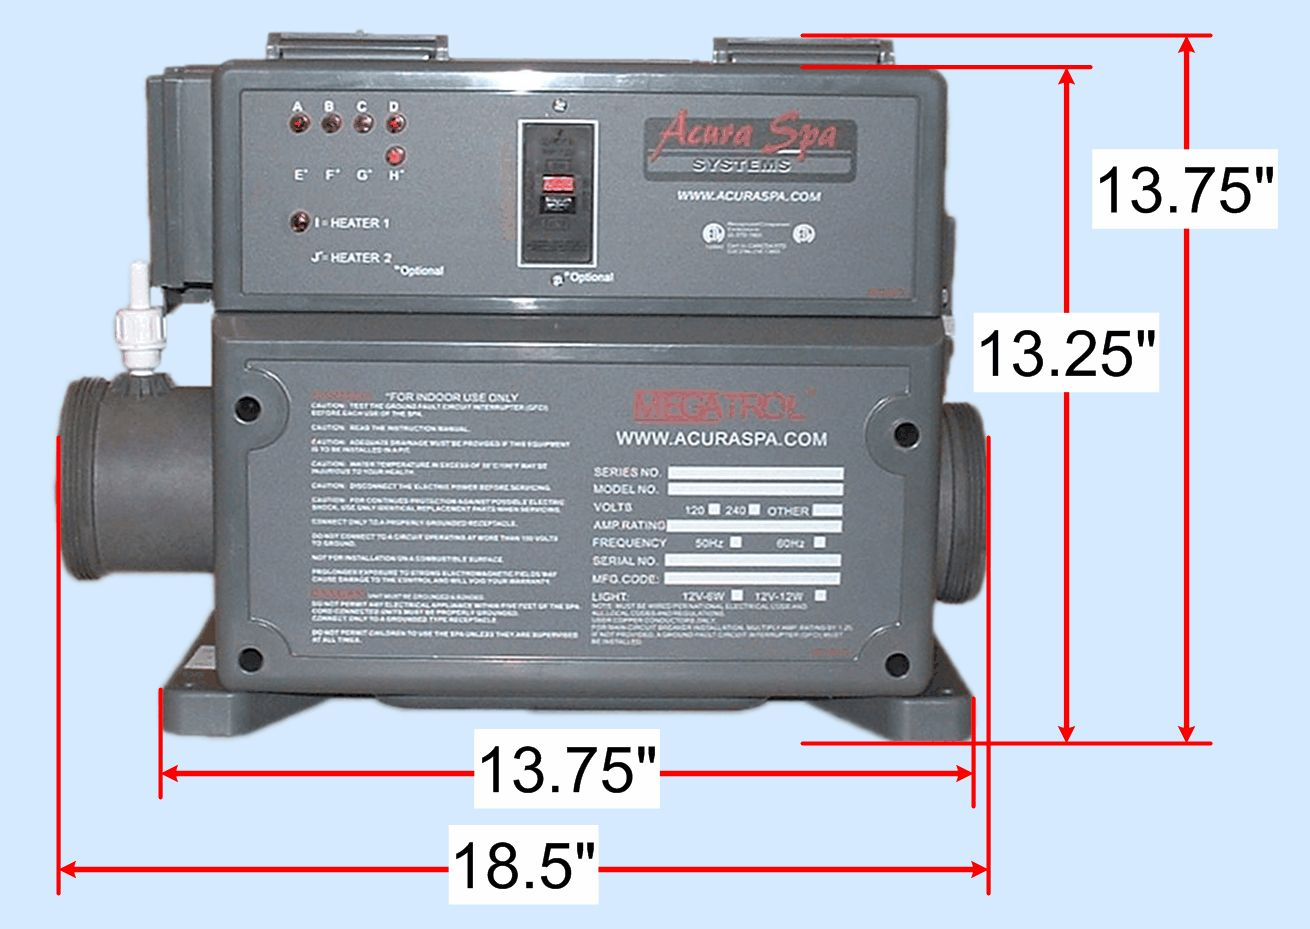 Acura Spa Contactor Relay Wiring Diagram - House Wiring Diagram ...